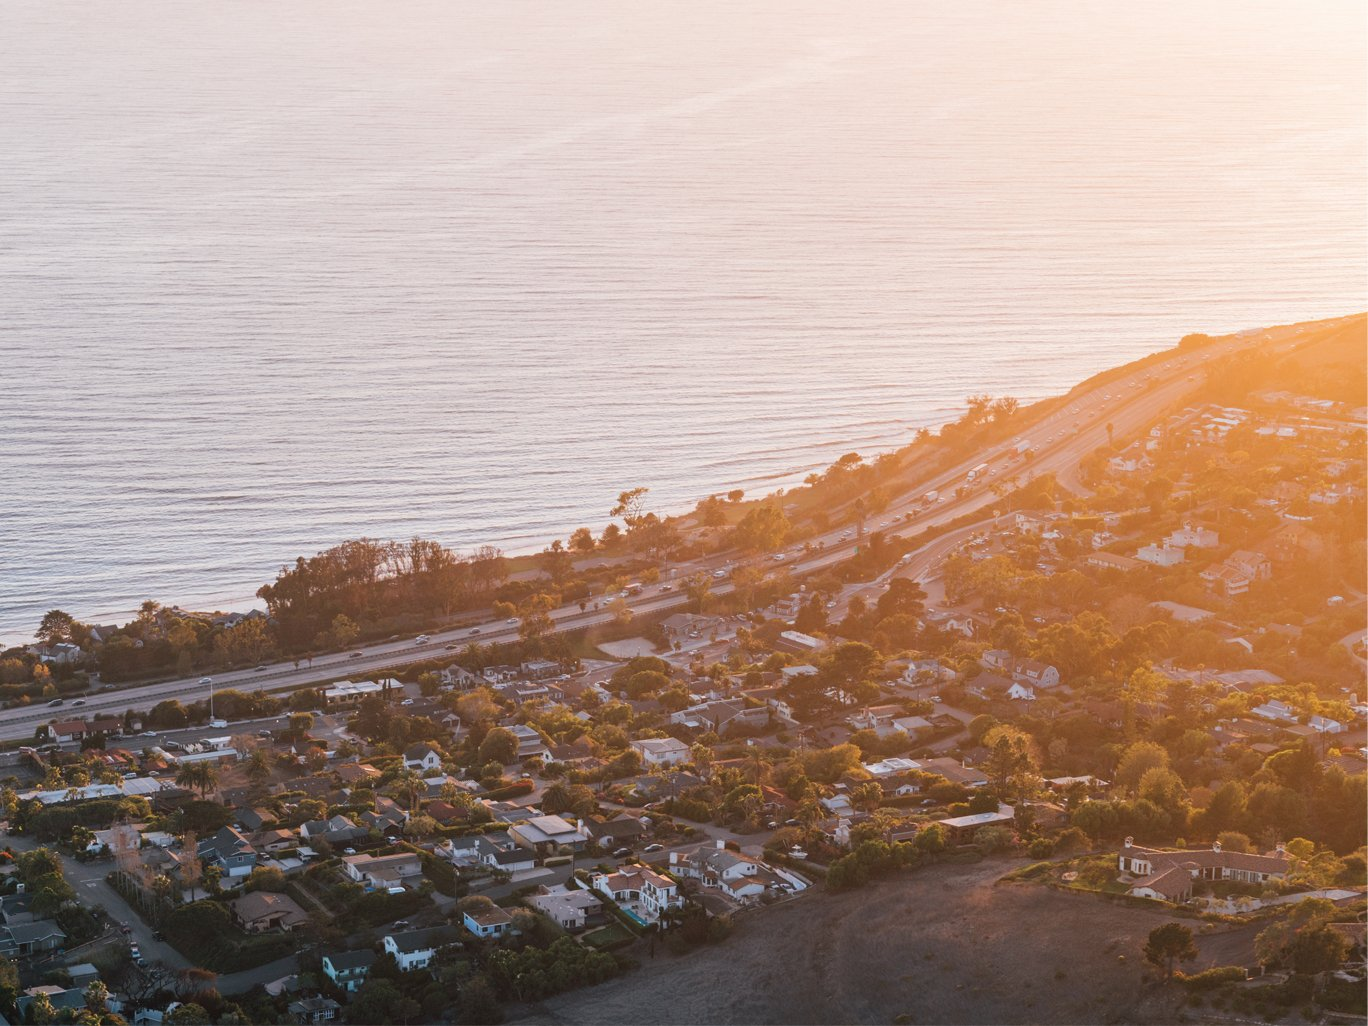 summerland-coast.jpg